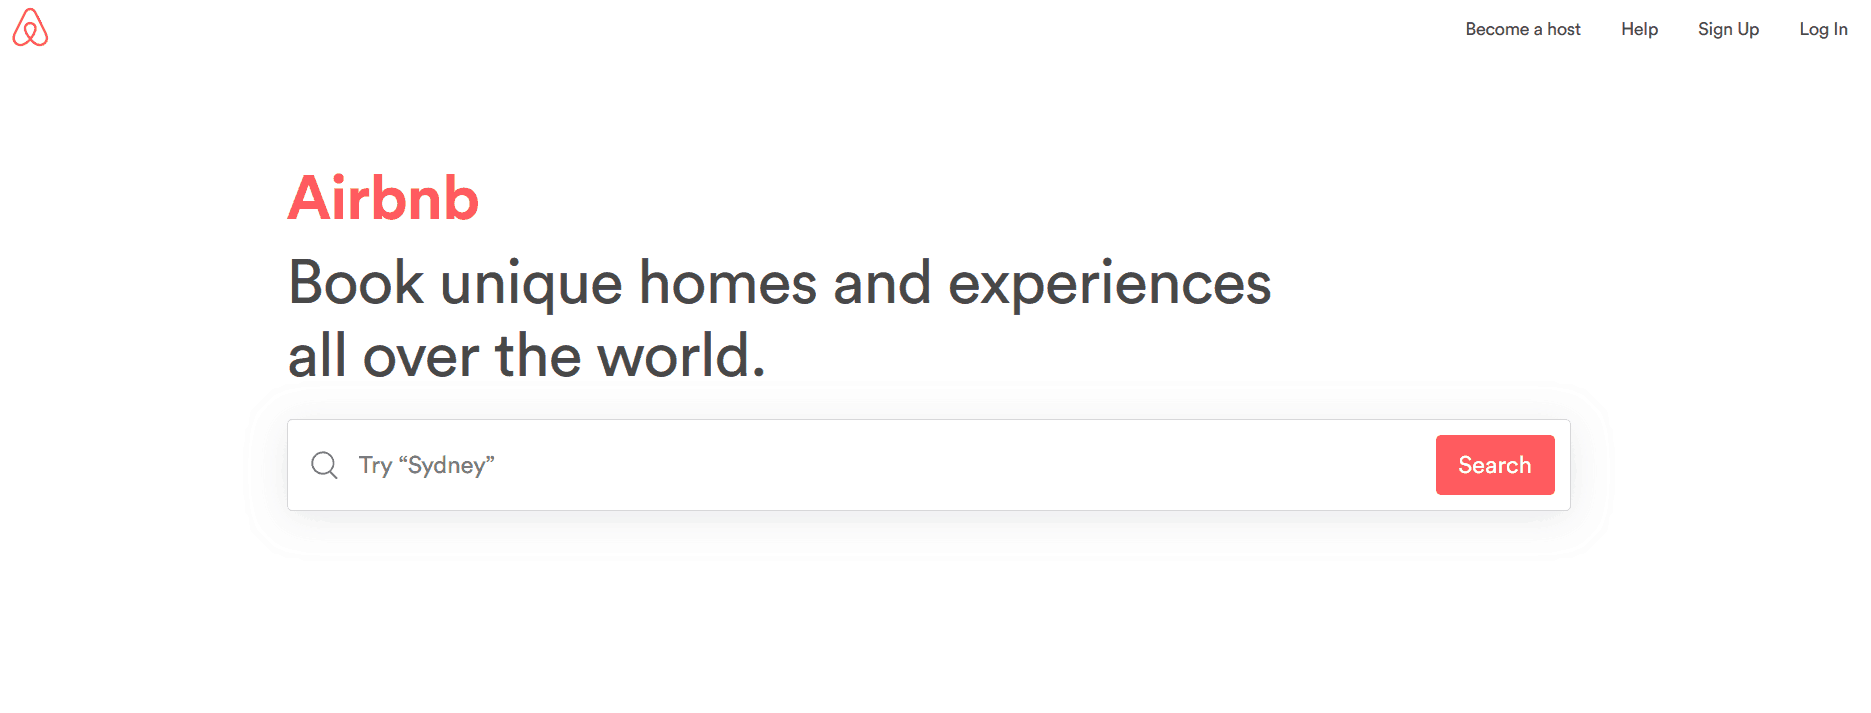 Airbnb uses Ruby on Rails